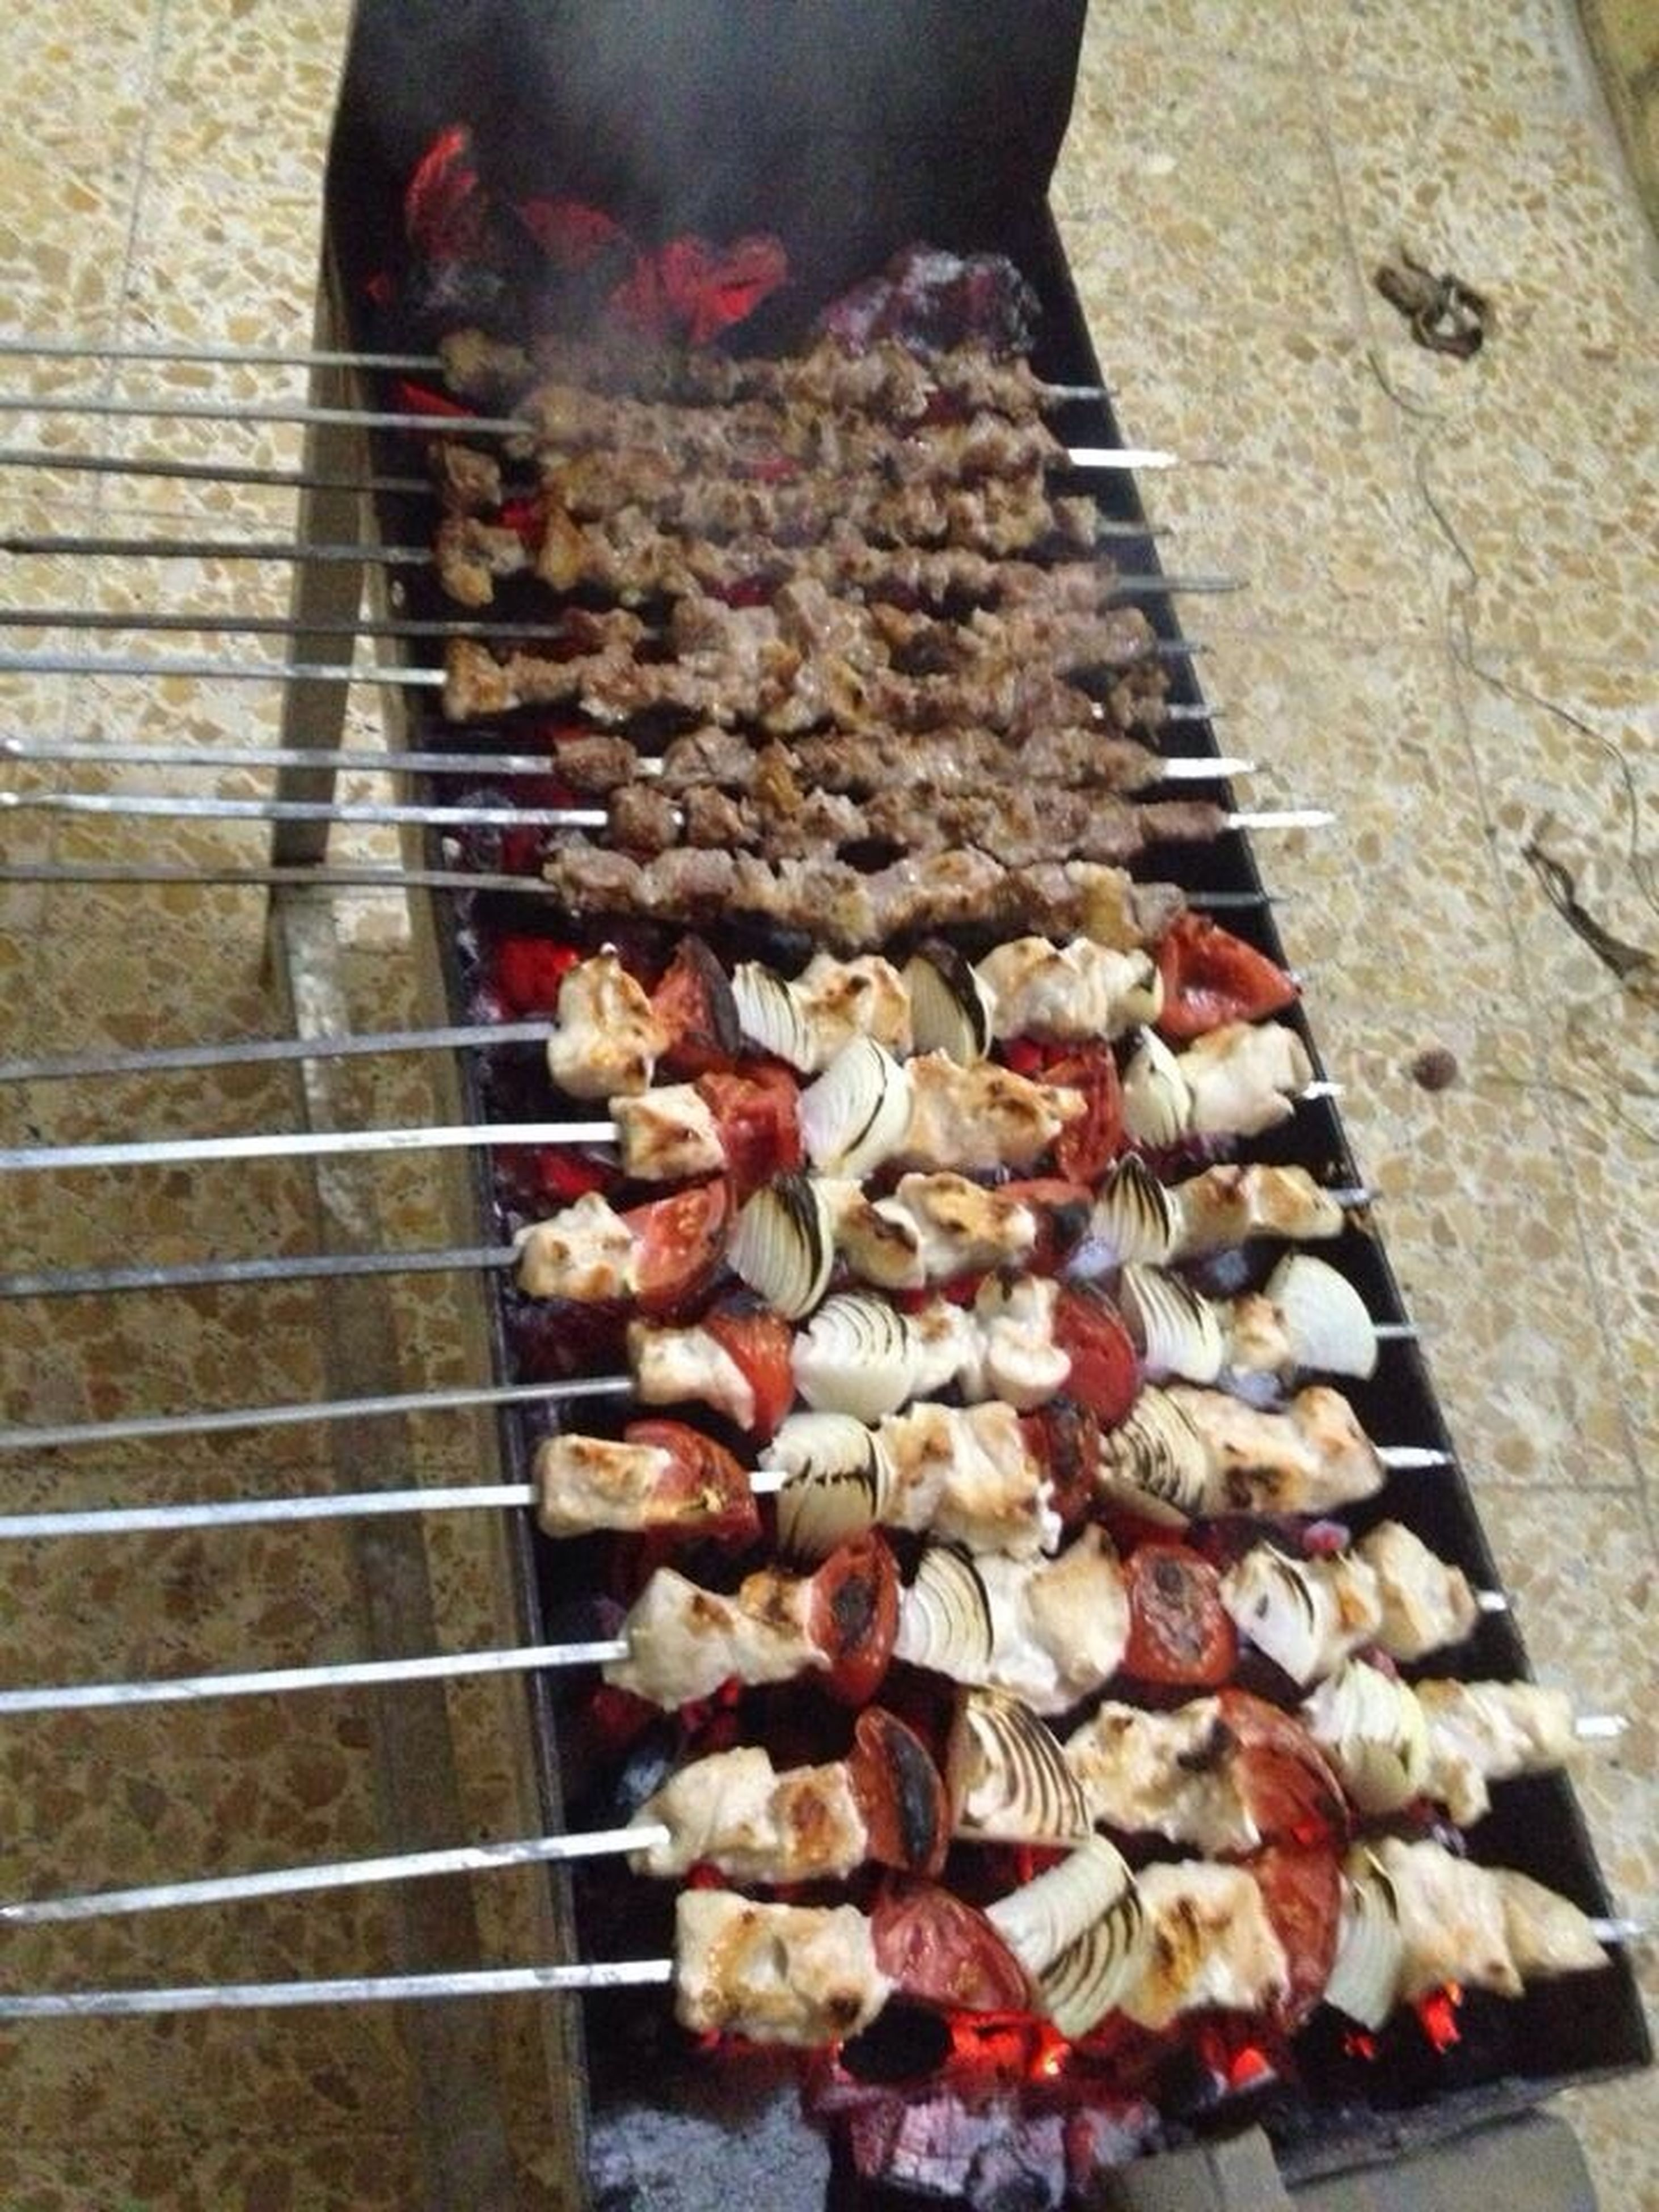 food and drink, food, freshness, large group of objects, healthy eating, abundance, high angle view, barbecue grill, for sale, retail, market stall, preparation, market, indoors, meat, variation, preparing food, still life